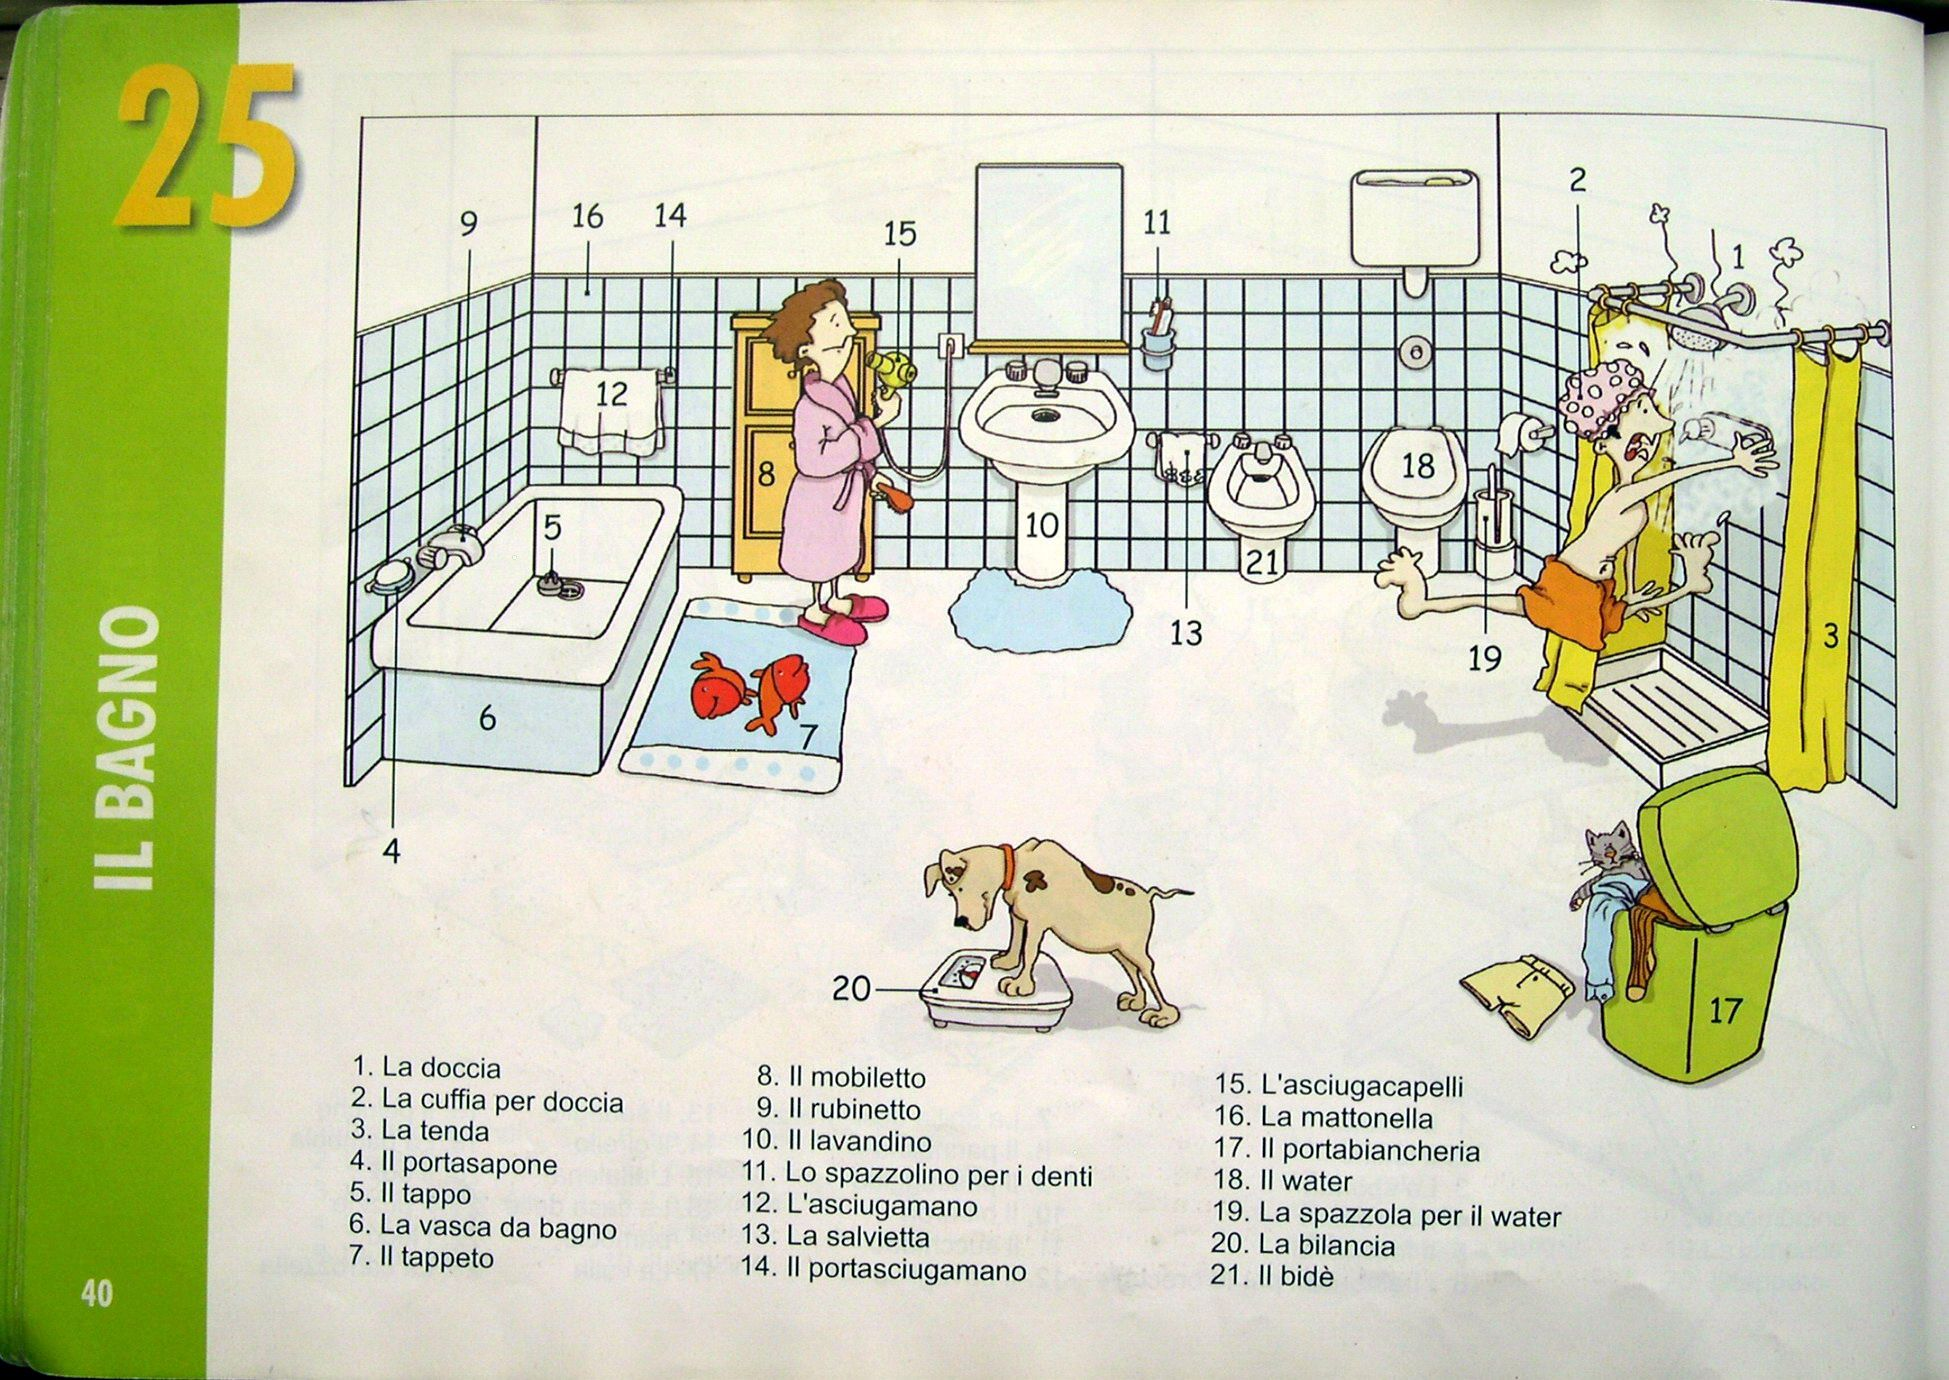 Pag 34 La casa: il bagno | Italian Language | Pinterest | Learning ...